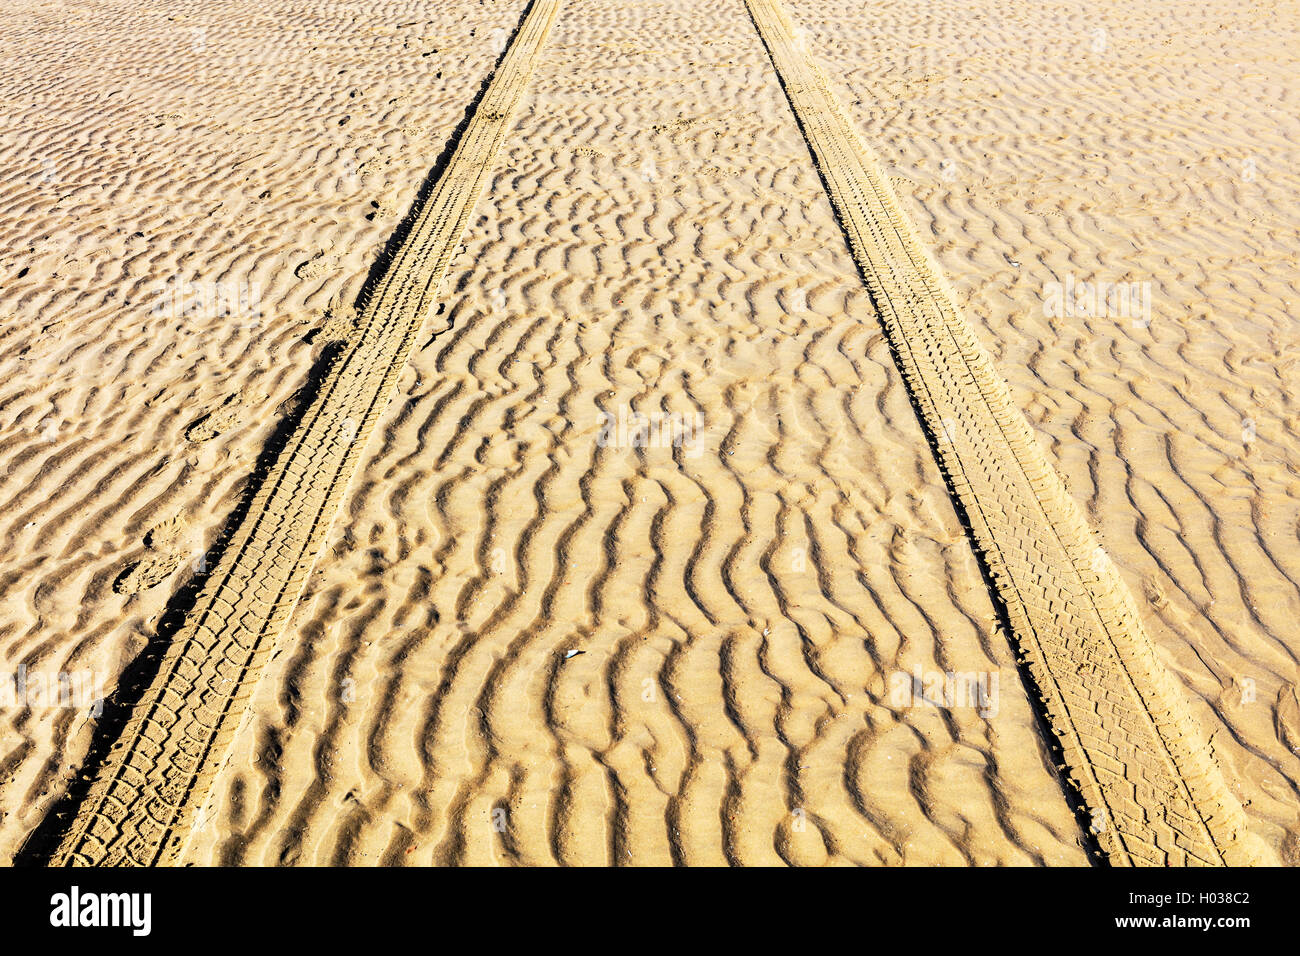 Wheel tracks in the the sand dunes. - Stock Image